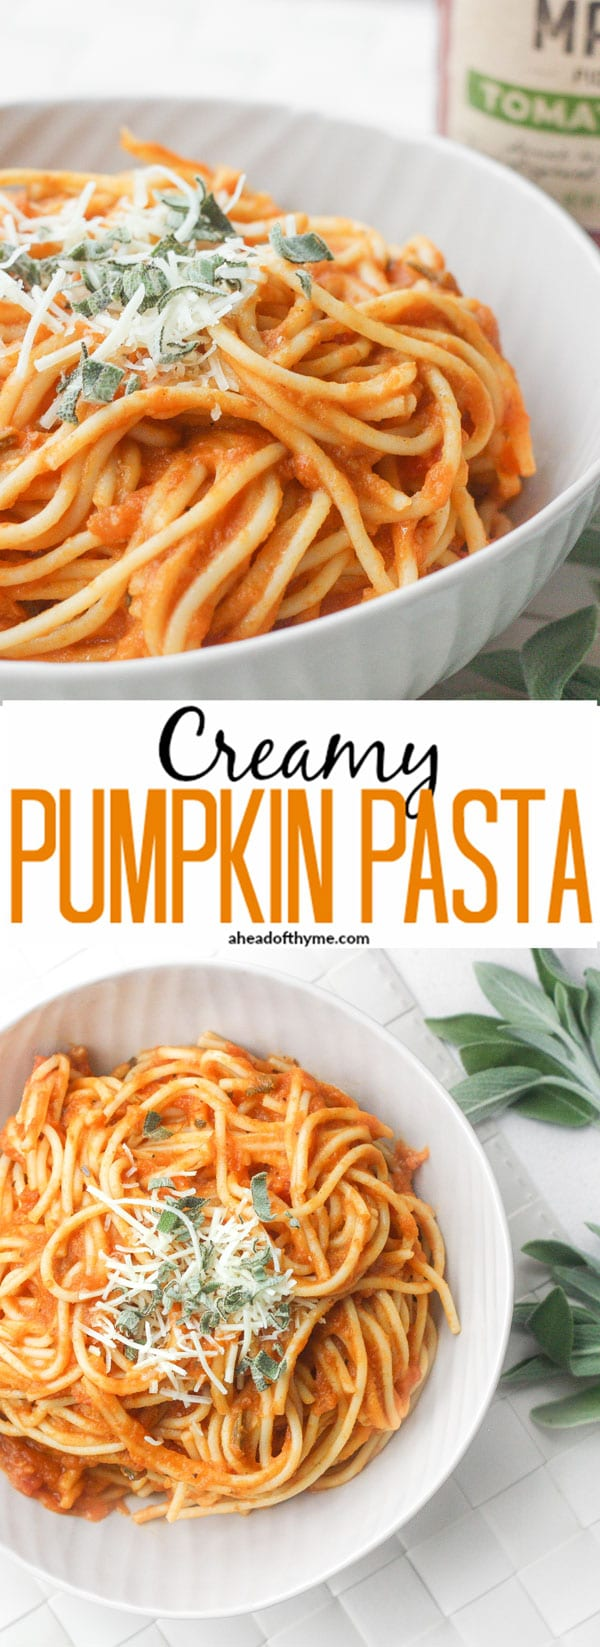 Creamy Pumpkin Pasta: The perfect weeknight meal is born this fall when pumpkin, tomato sauce and sage come together to create a delicious, creamy pumpkin pasta! | aheadofthyme.com